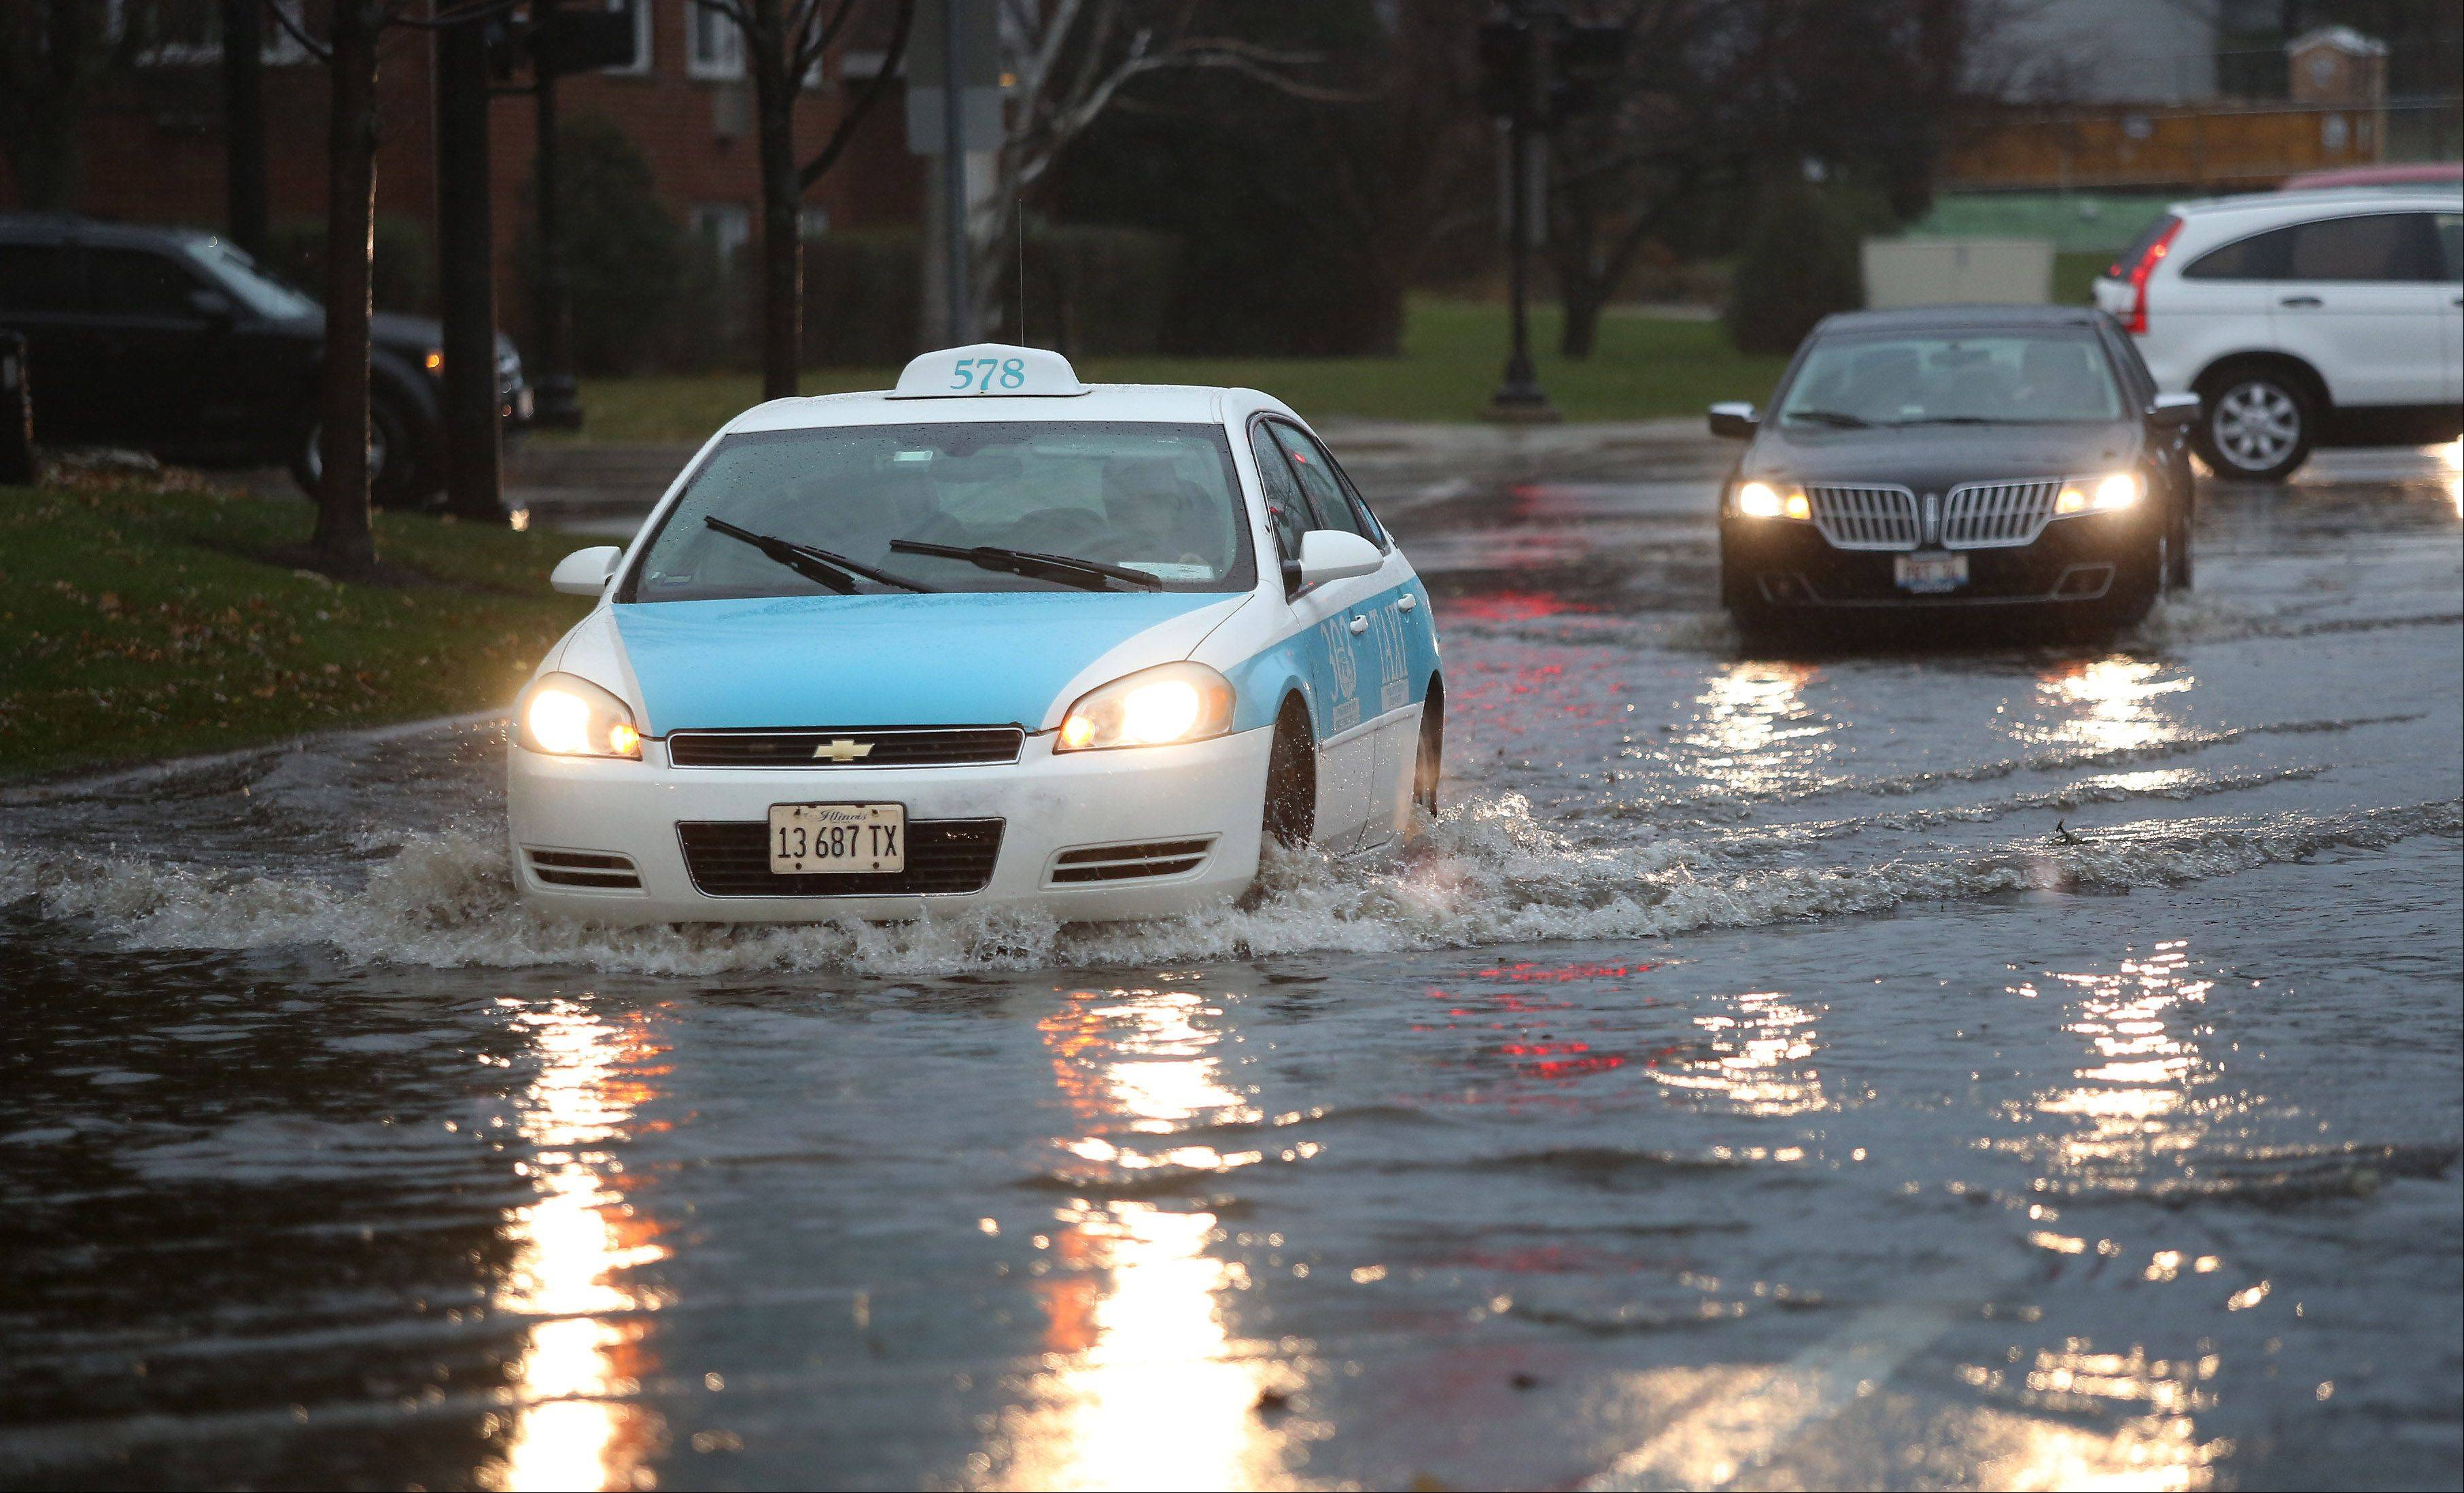 Cars drive through flooded streets at Smith Street and Colfax Street in Palatine as strong storms affected Chicago and the suburban area Sunday causing flooding problems and tornadoes to form south of Chicago. The Chicago Bears game at Soldier Field was delayed until the storms passed.